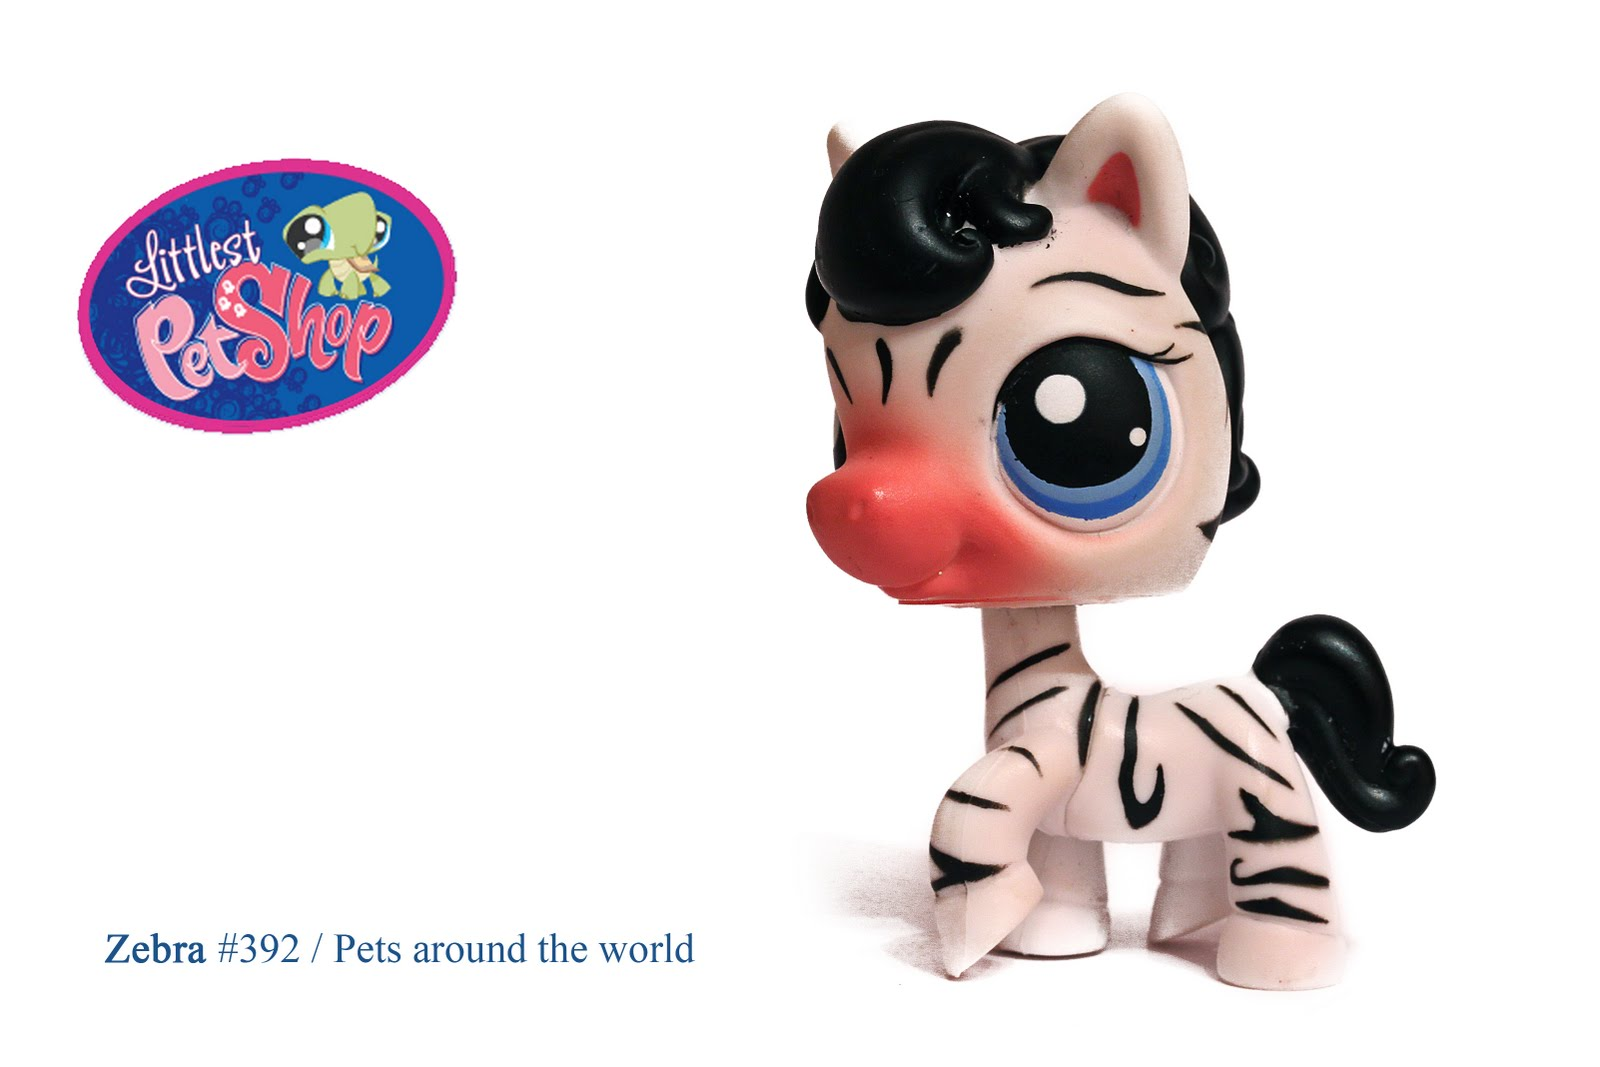 nicoles lps blog littlest pet shop our checklist 301 400 complete